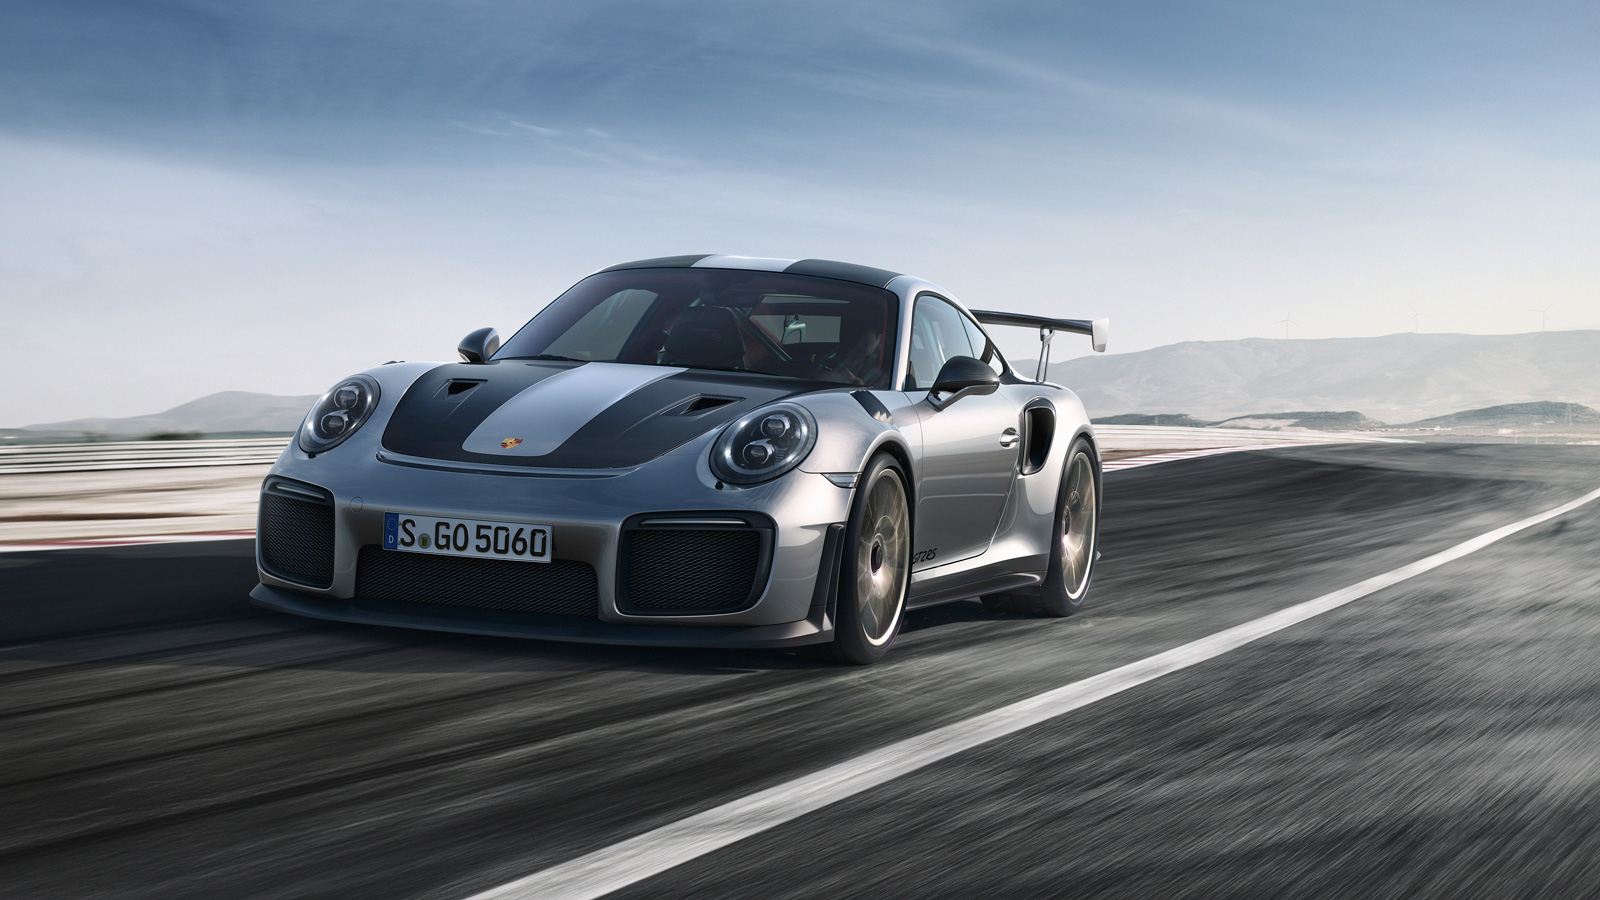 porsche 39 s 911 gt2 rs nurburgring lap time could start with a six news. Black Bedroom Furniture Sets. Home Design Ideas